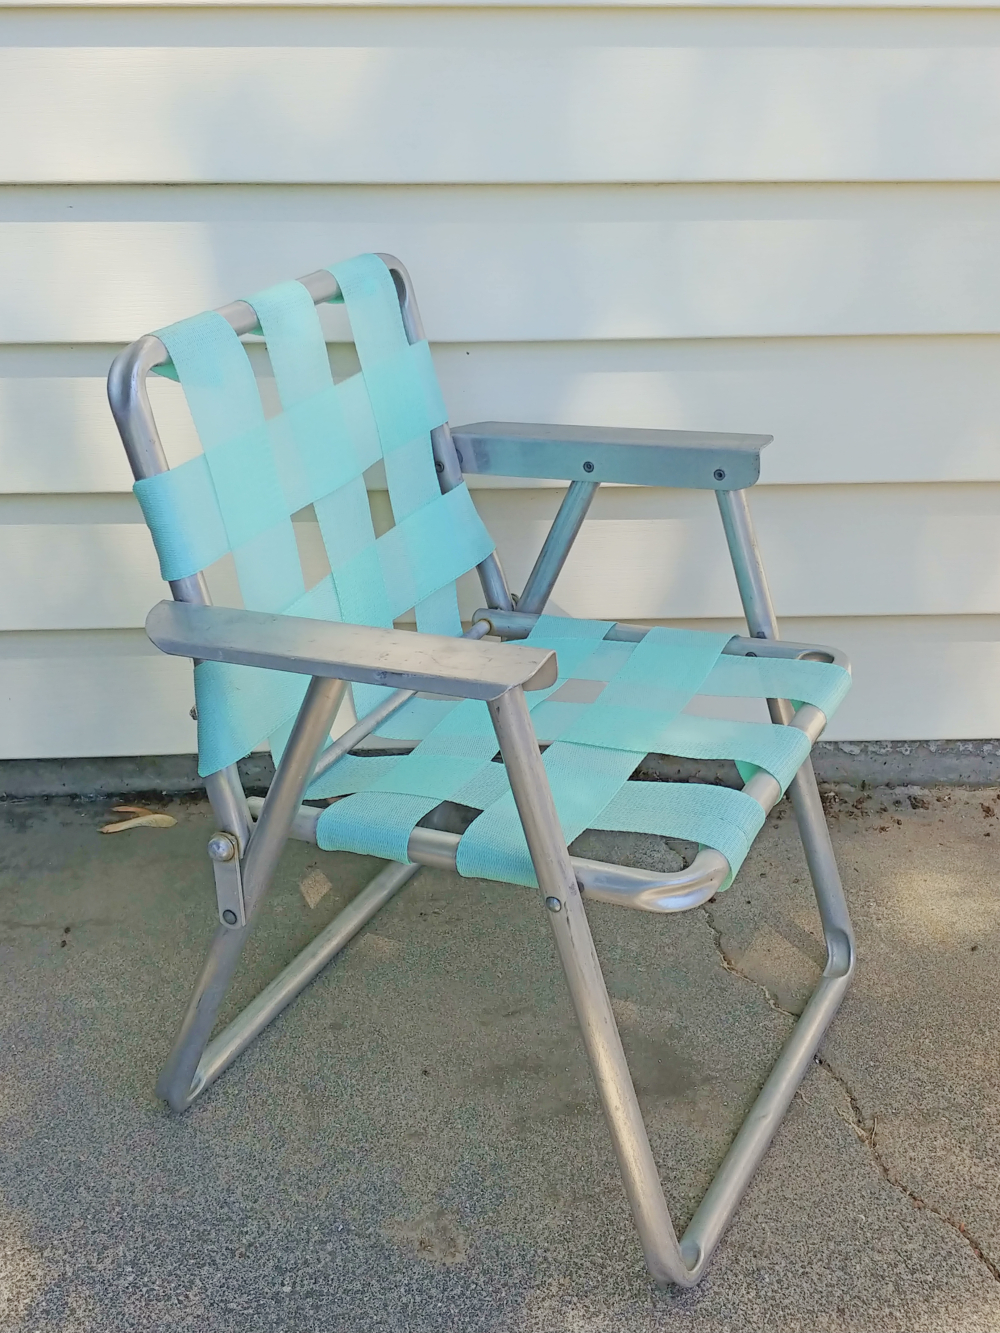 tiny children's lawn chair